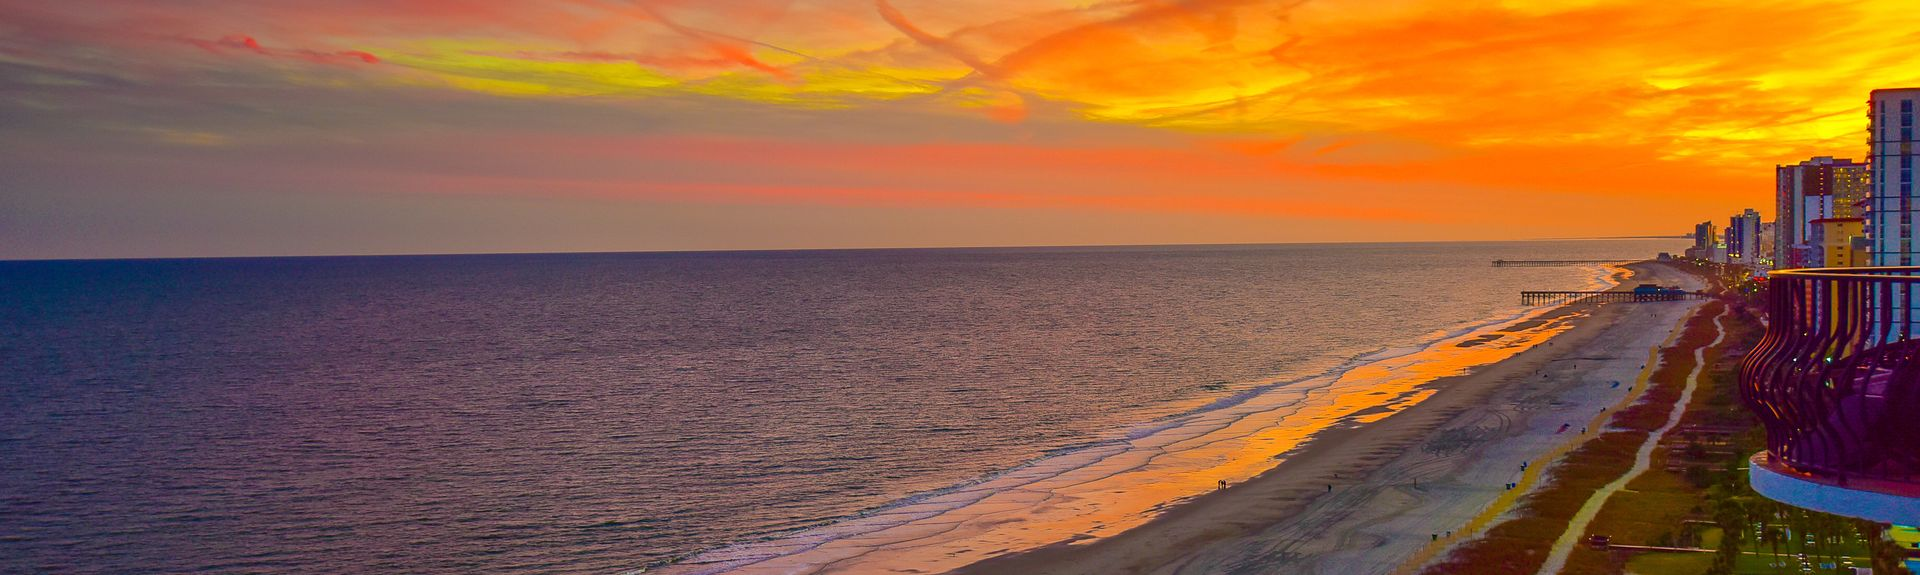 Golden Mile, Myrtle Beach, South Carolina, United States of America